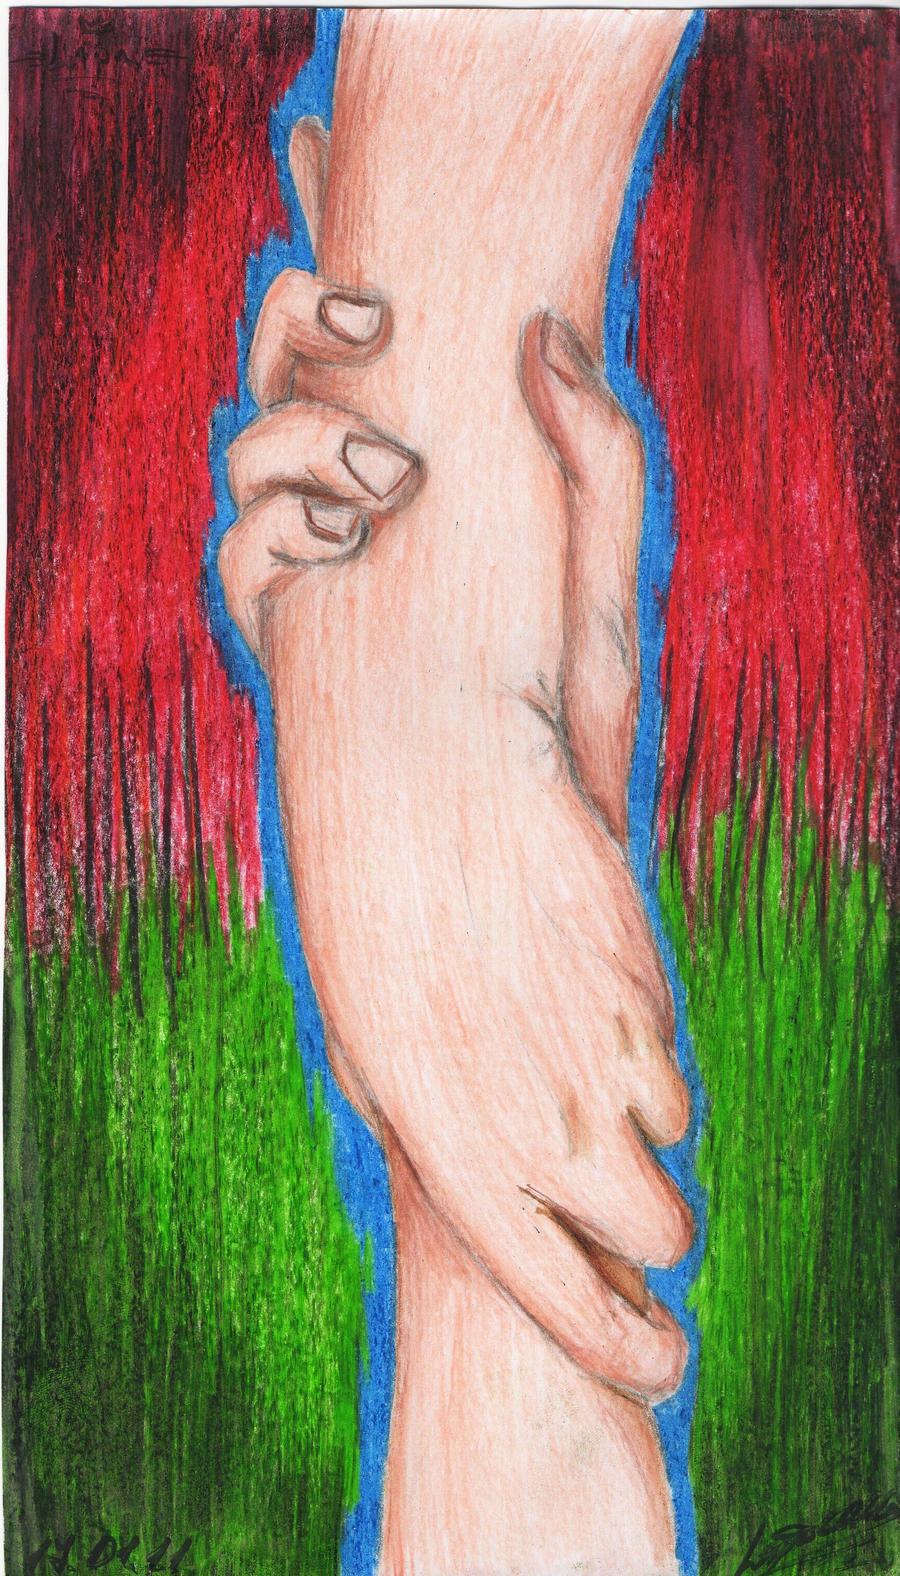 hands by Lapapolnoch